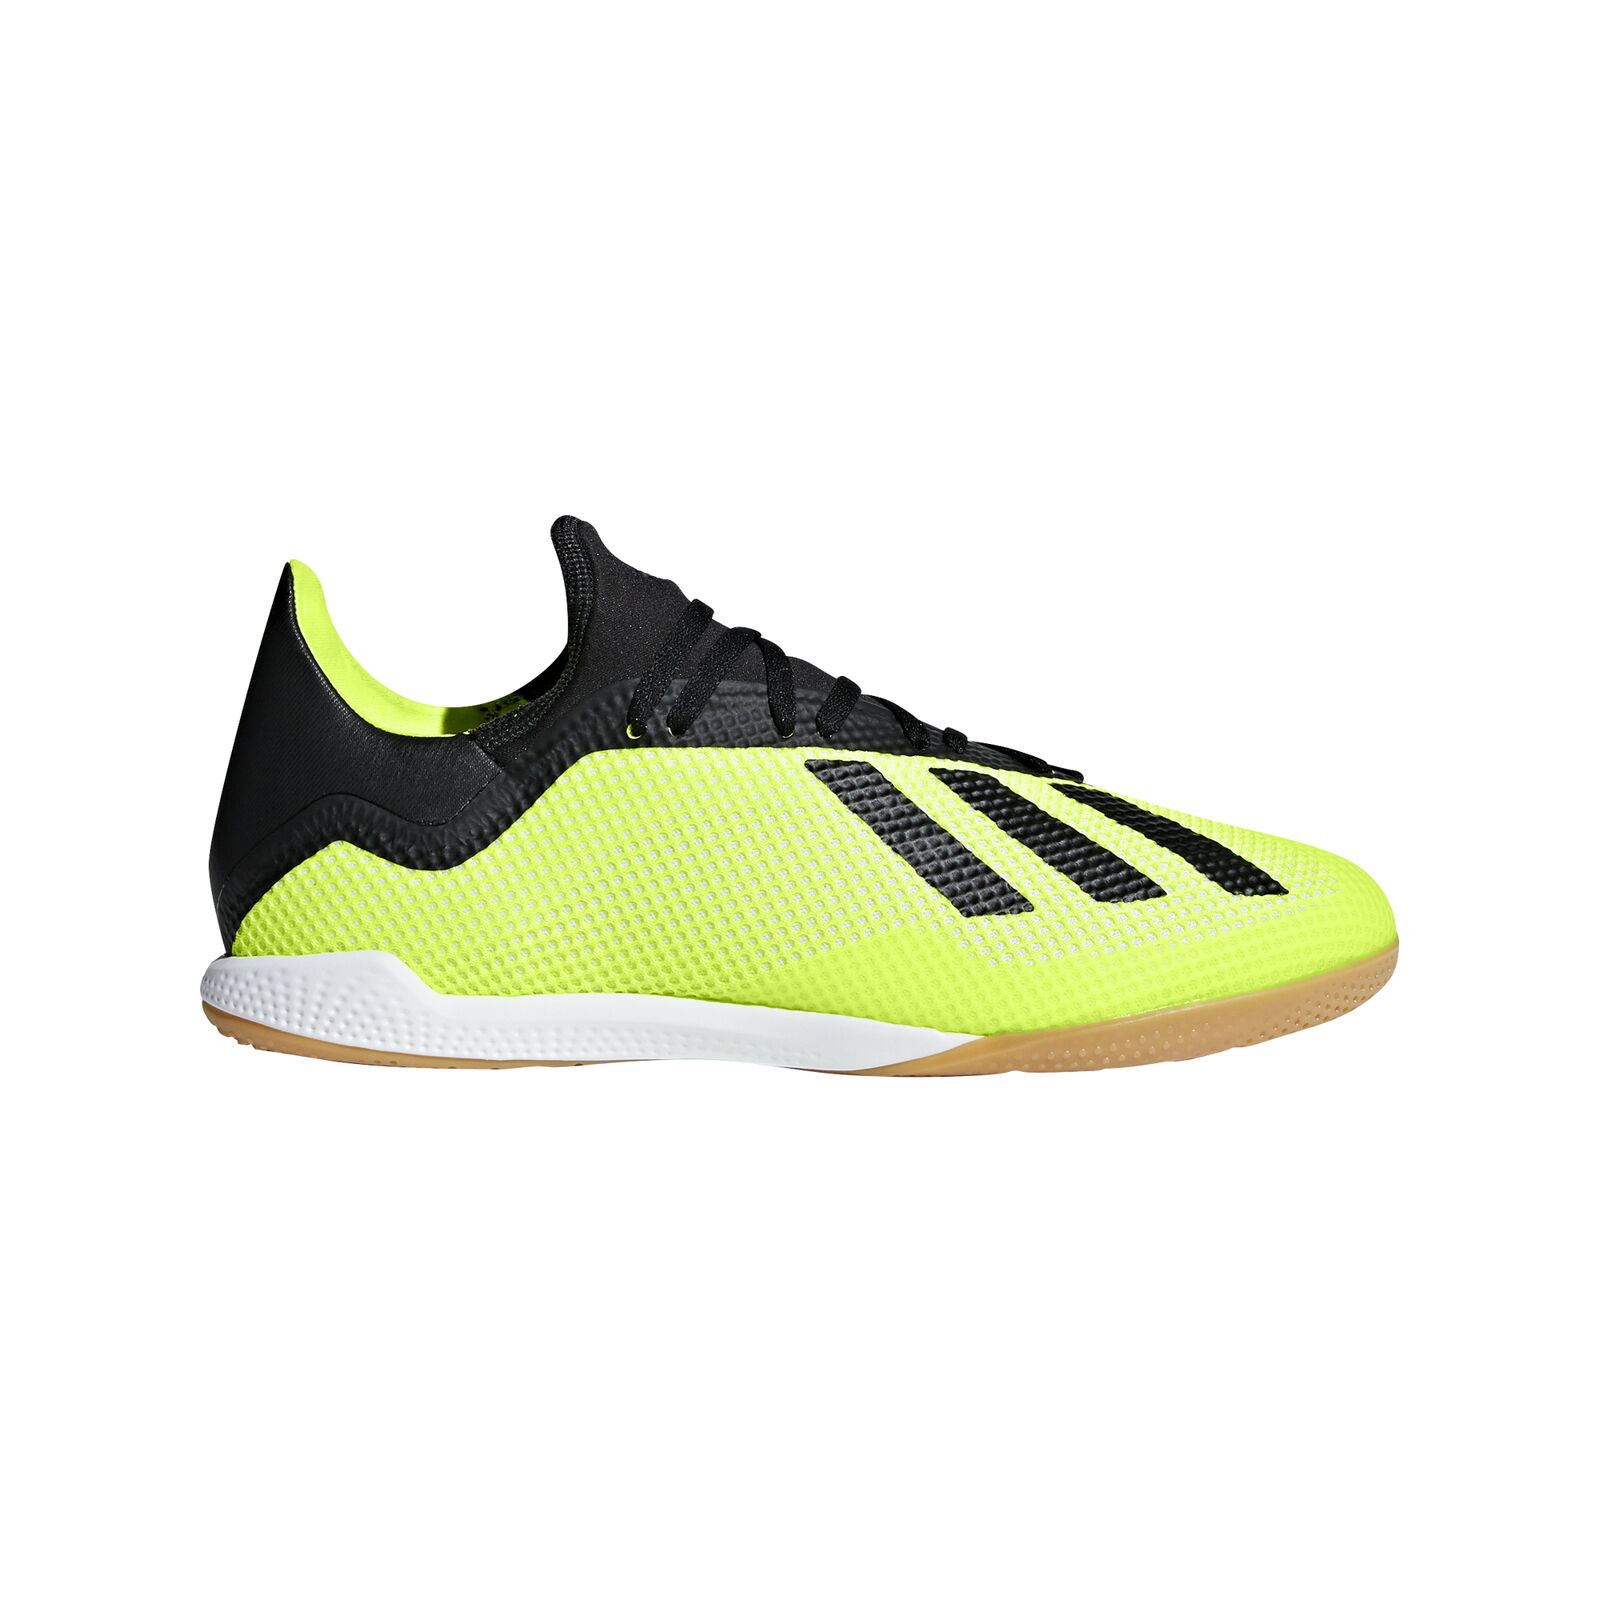 Adidas Football Boots x Tango 17.3 in Fußball-hallenschuhe Indoor Trainers